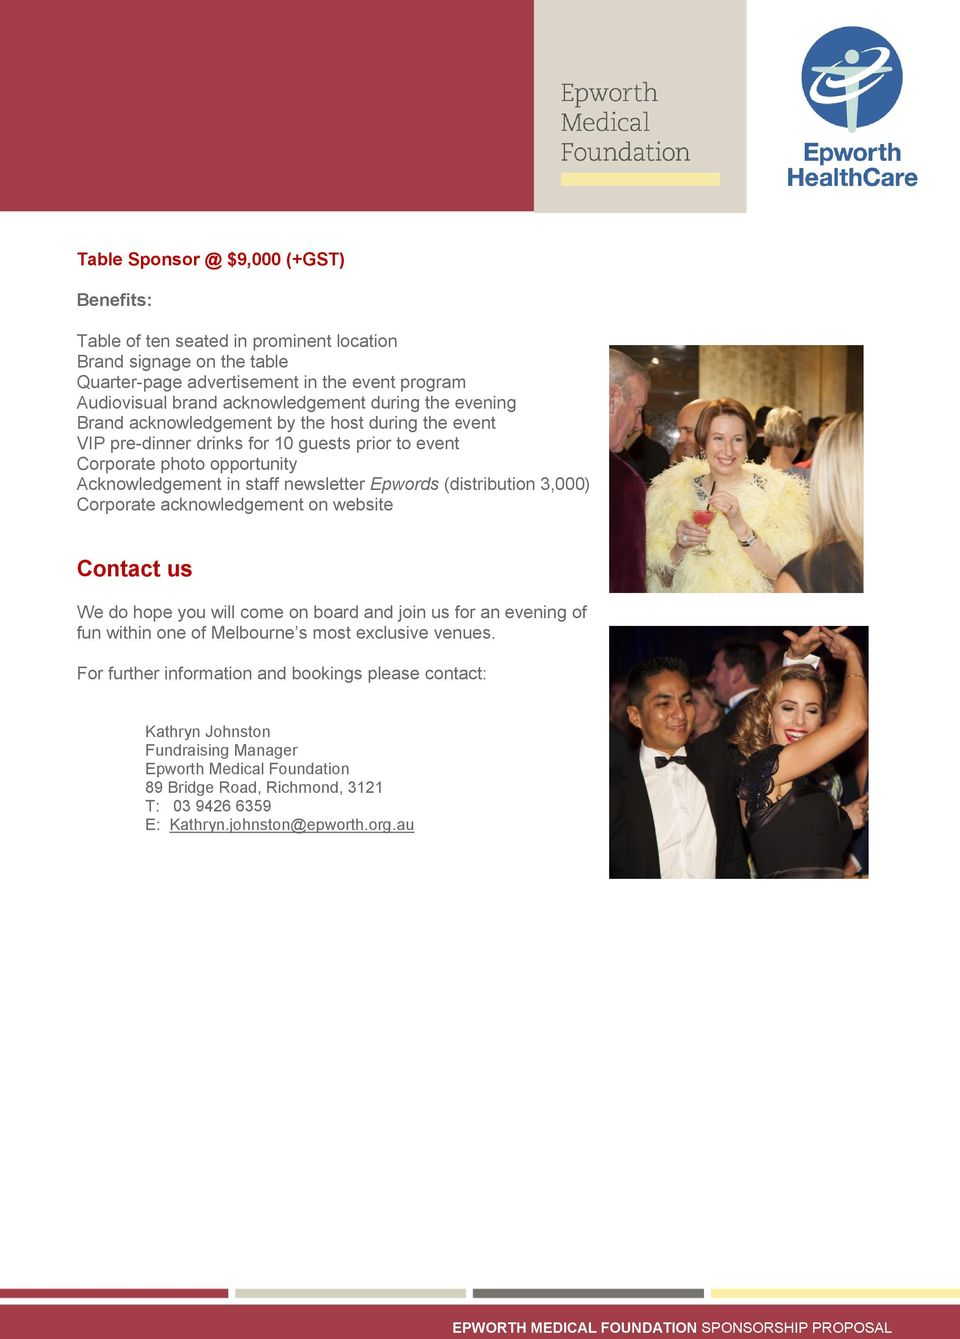 come on board and join us for an evening of fun within one of Melbourne s most exclusive venues.